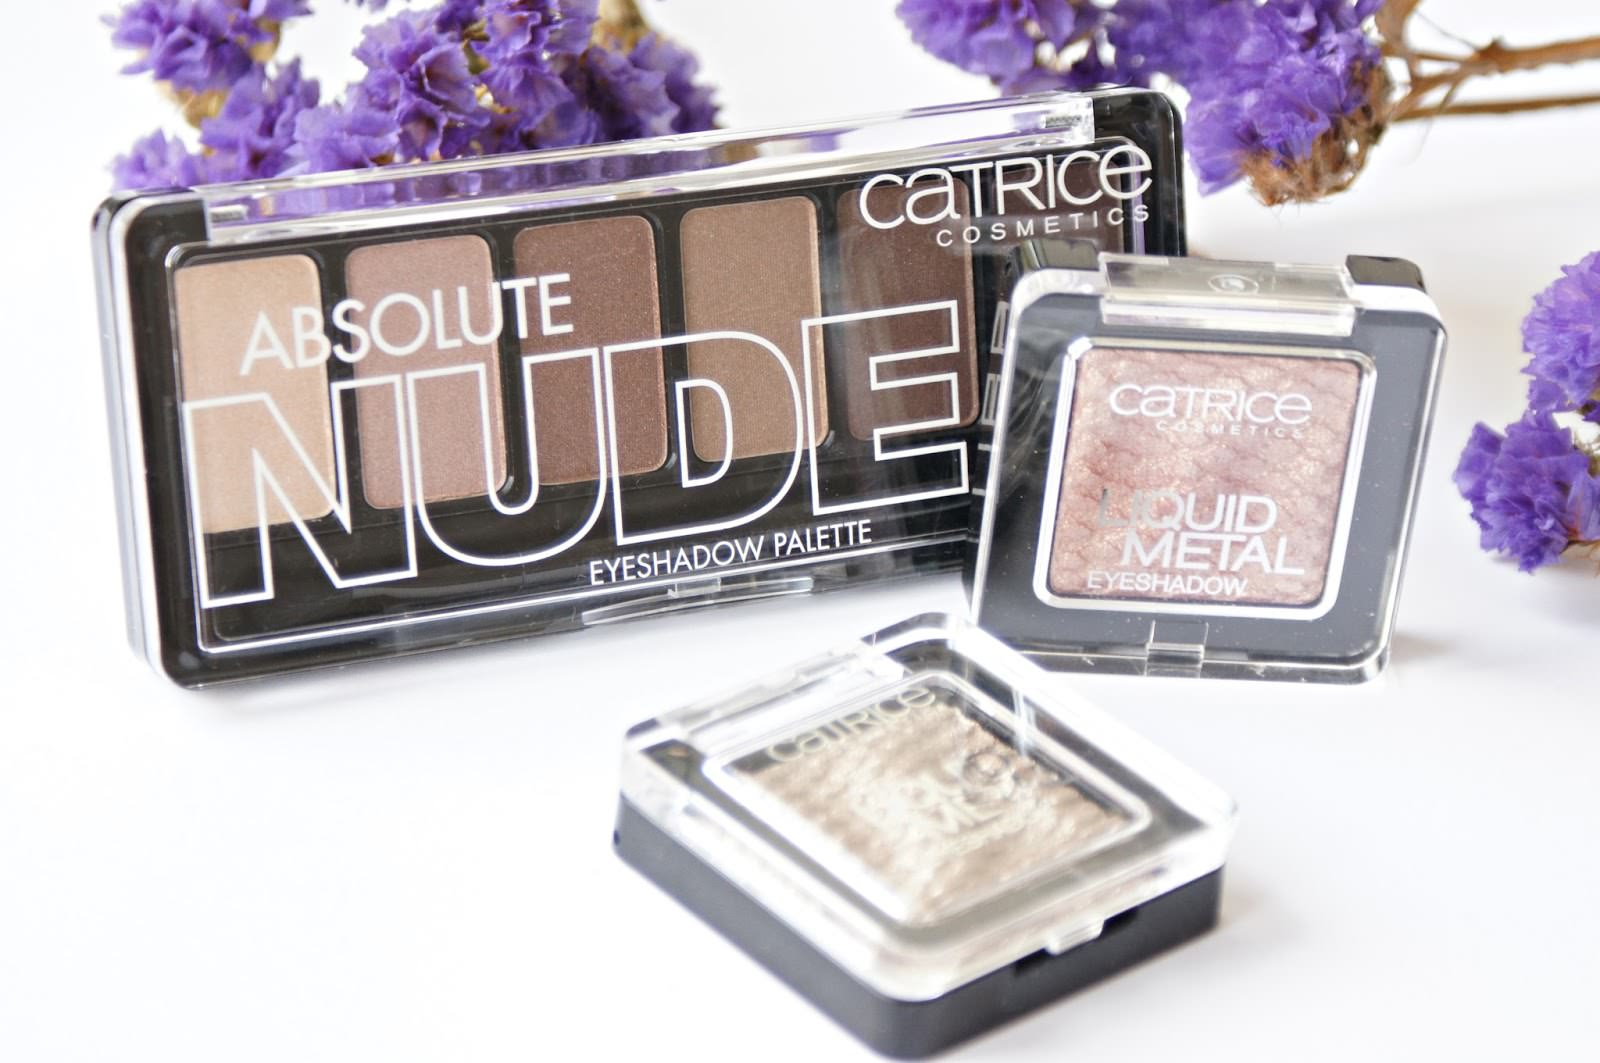 Catrice Absolute Nude Eyeshadow Palette (010 All Nude) Catrice Liquid Metal Eyeshadow (020 Gold n' Roses) Catrice Liquid Metal Eyeshadow (040 Under Treasure)